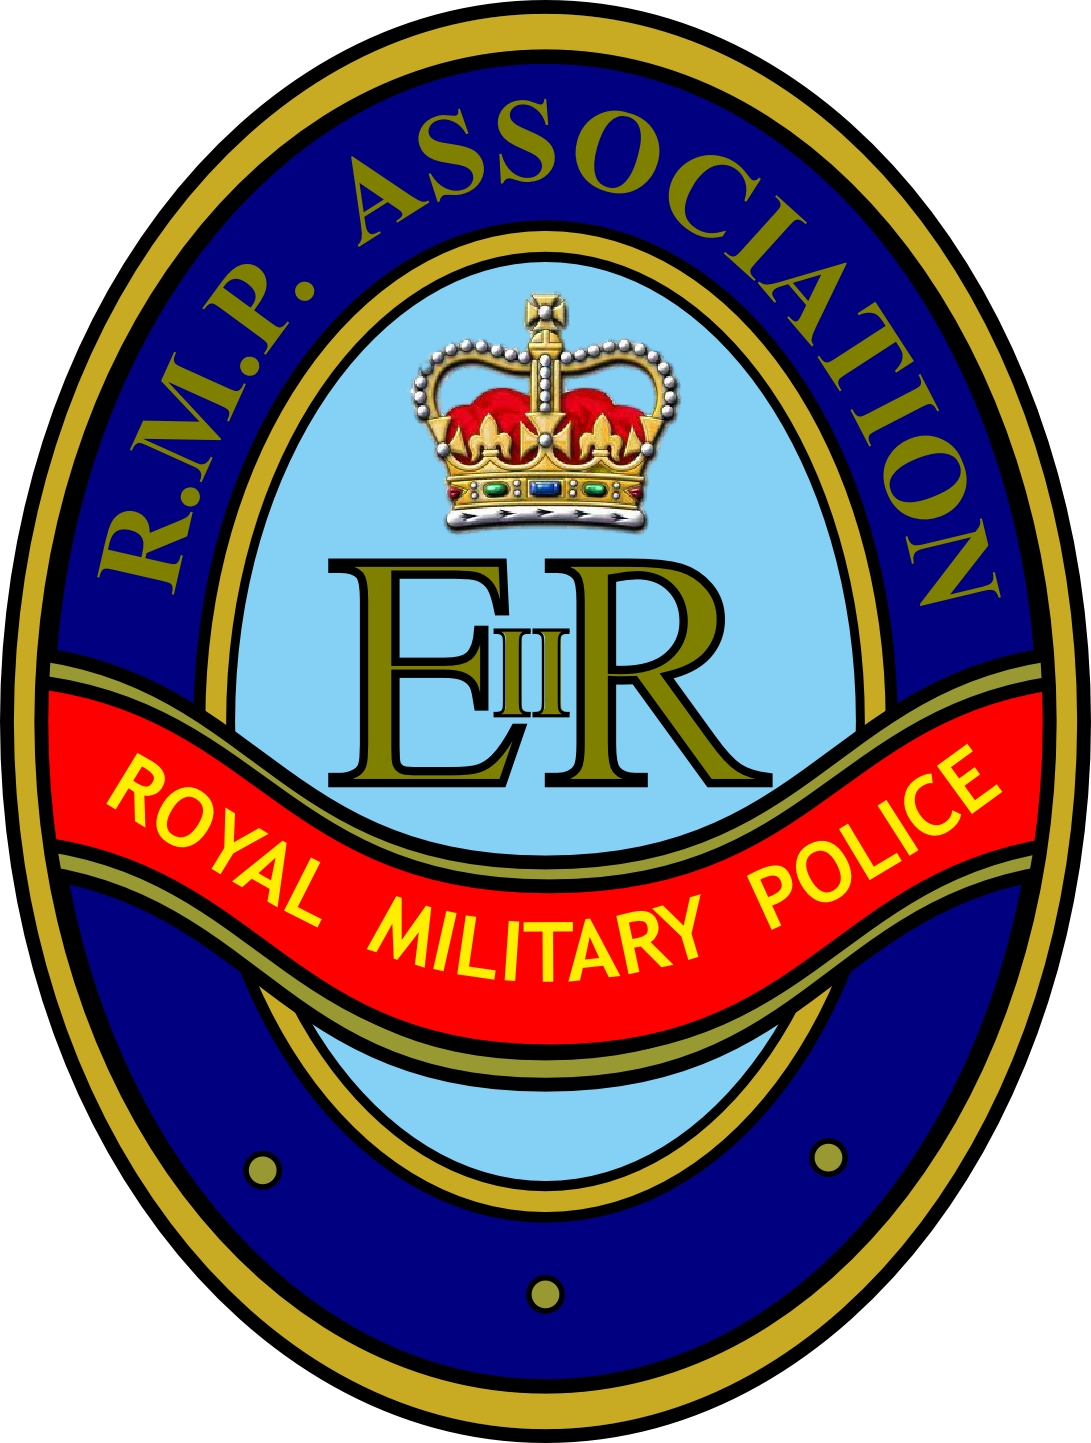 The RMP Association Badge